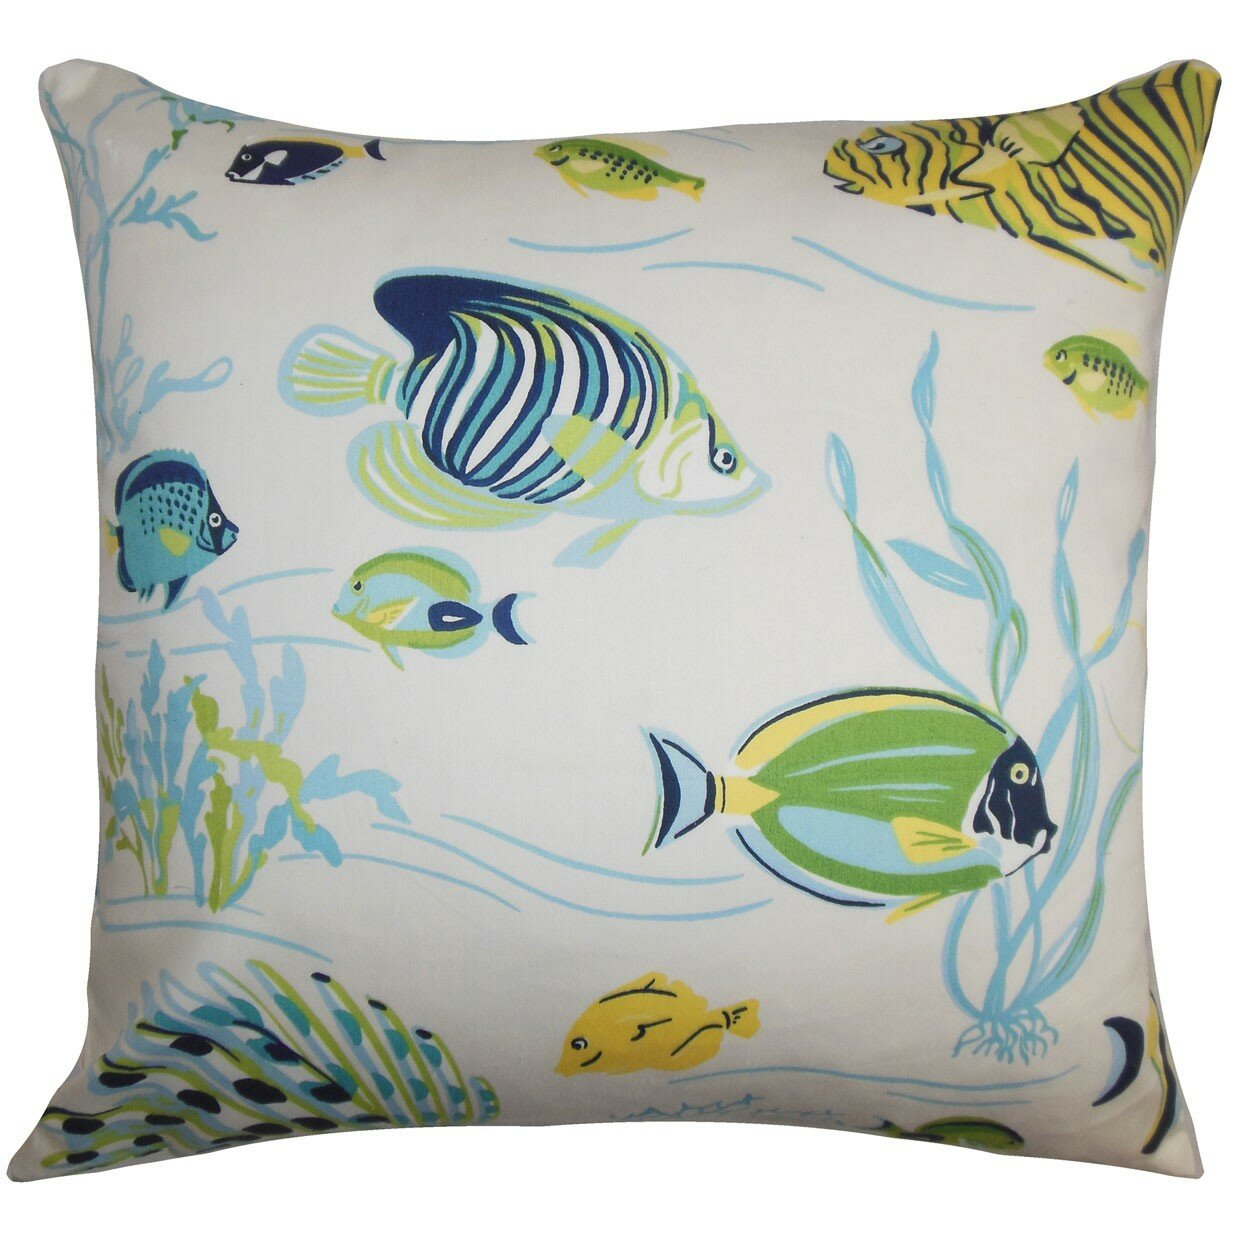 The Pillow Collection Niju Coastal Cotton Throw Pillow